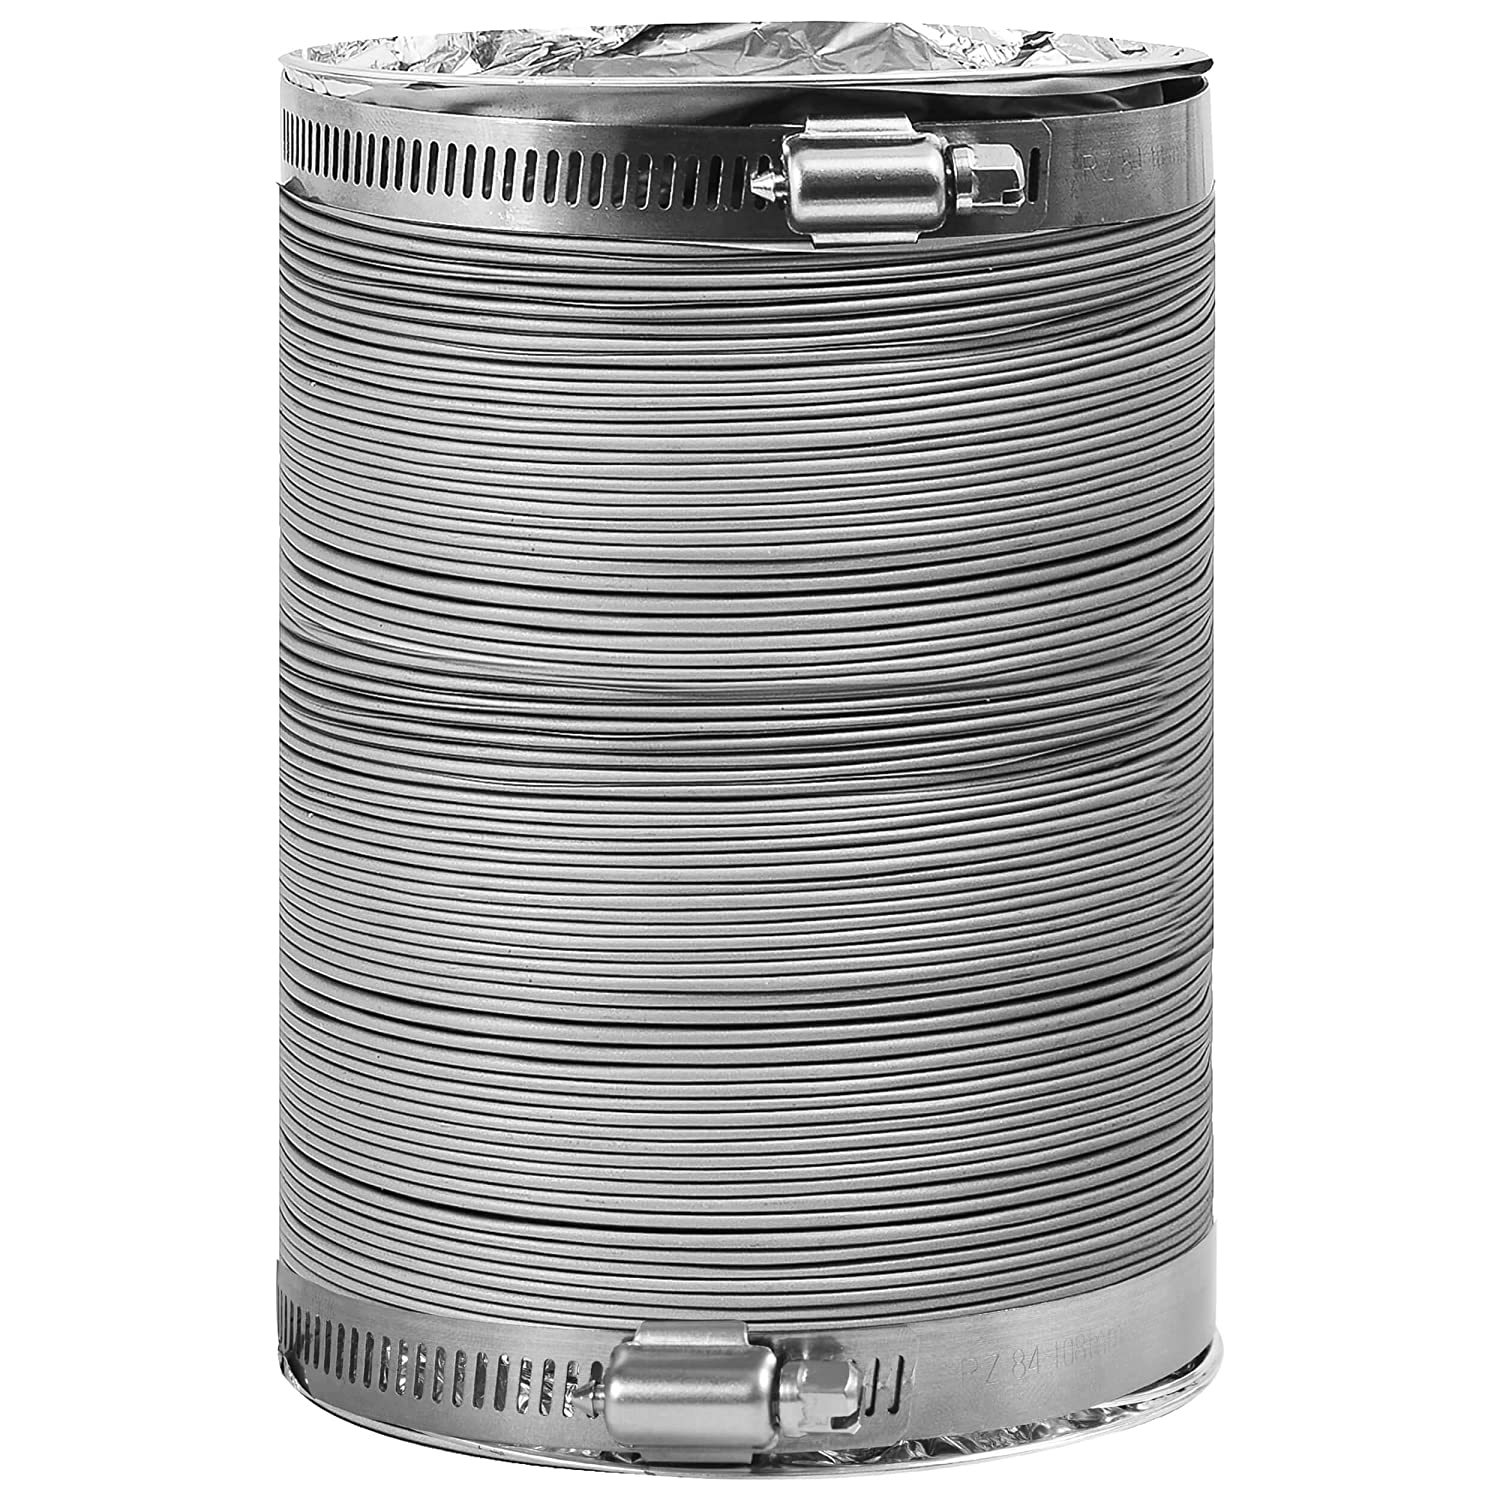 Dryer Vent Hose Transition Duct 4 inches Extra Strong Aluminum Interior and Flexible Tear Resistant PVC Outer Shell 12 ft HVAC or Grow Room Heat Ventilation 2 Premium Screw Clamp Connections